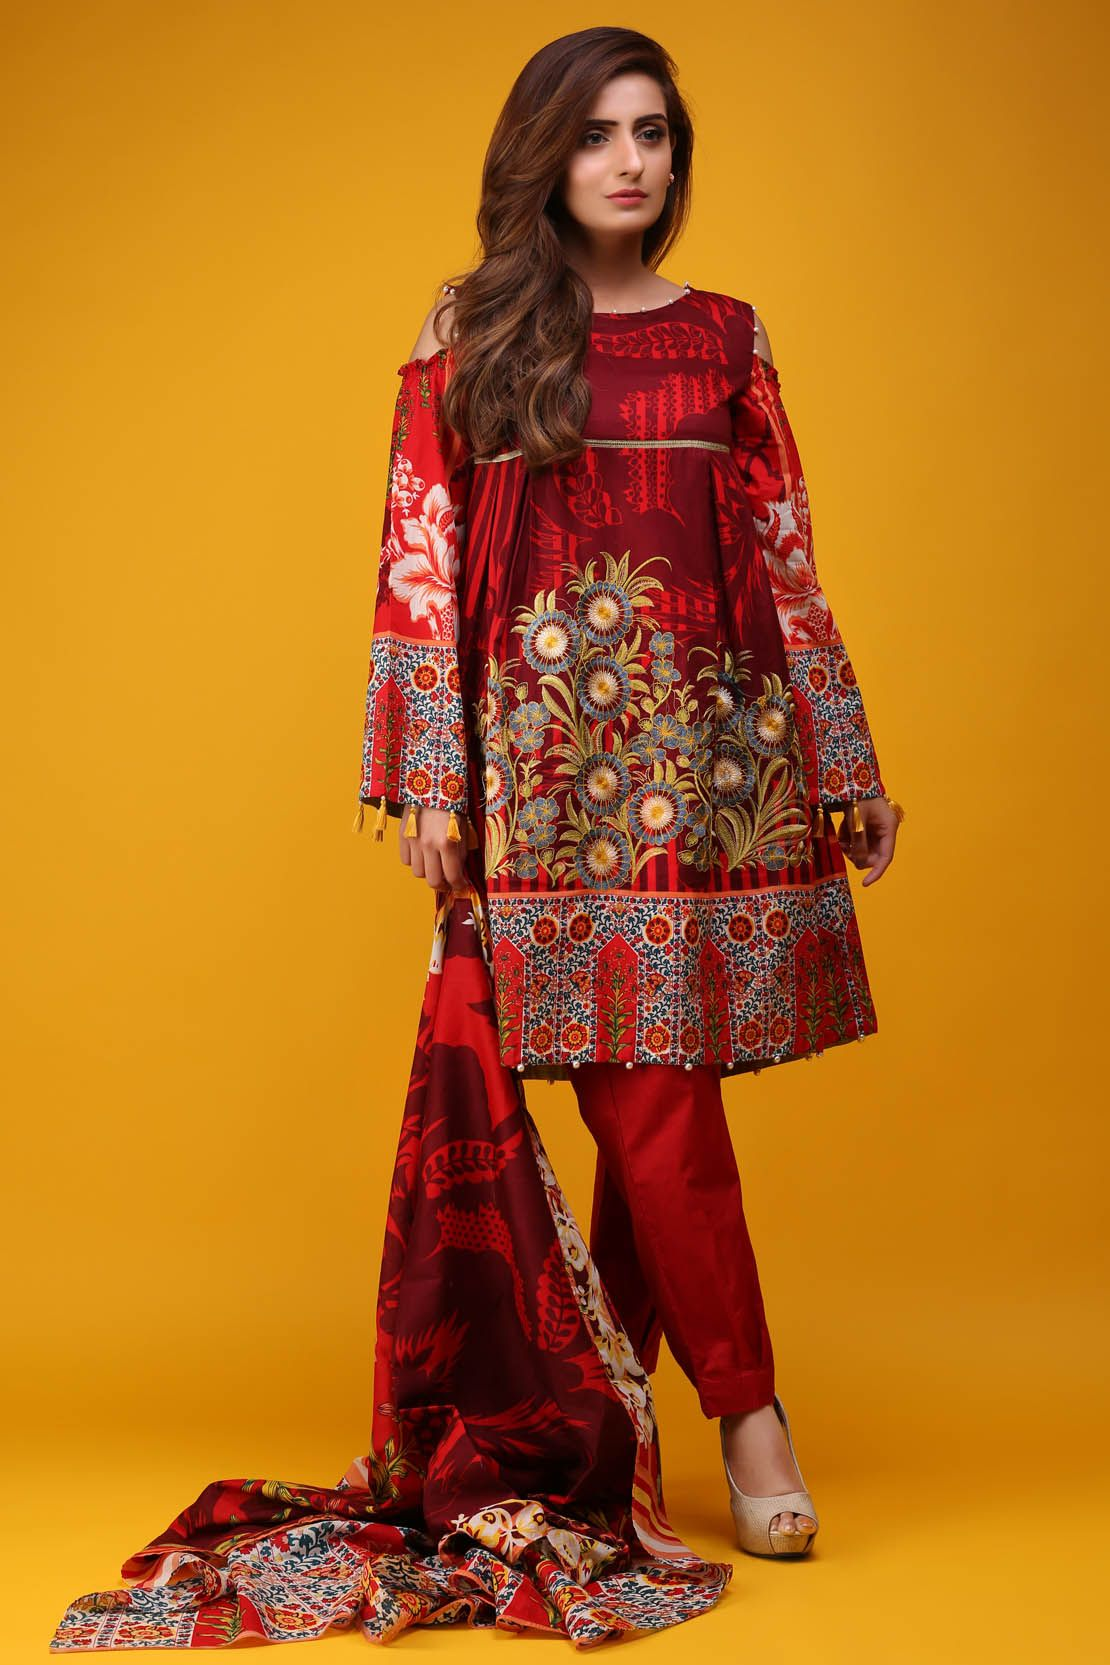 c9cea7e52ab Warda Latest Summer Dresses Printed   Embroidered Collection 2019 ...